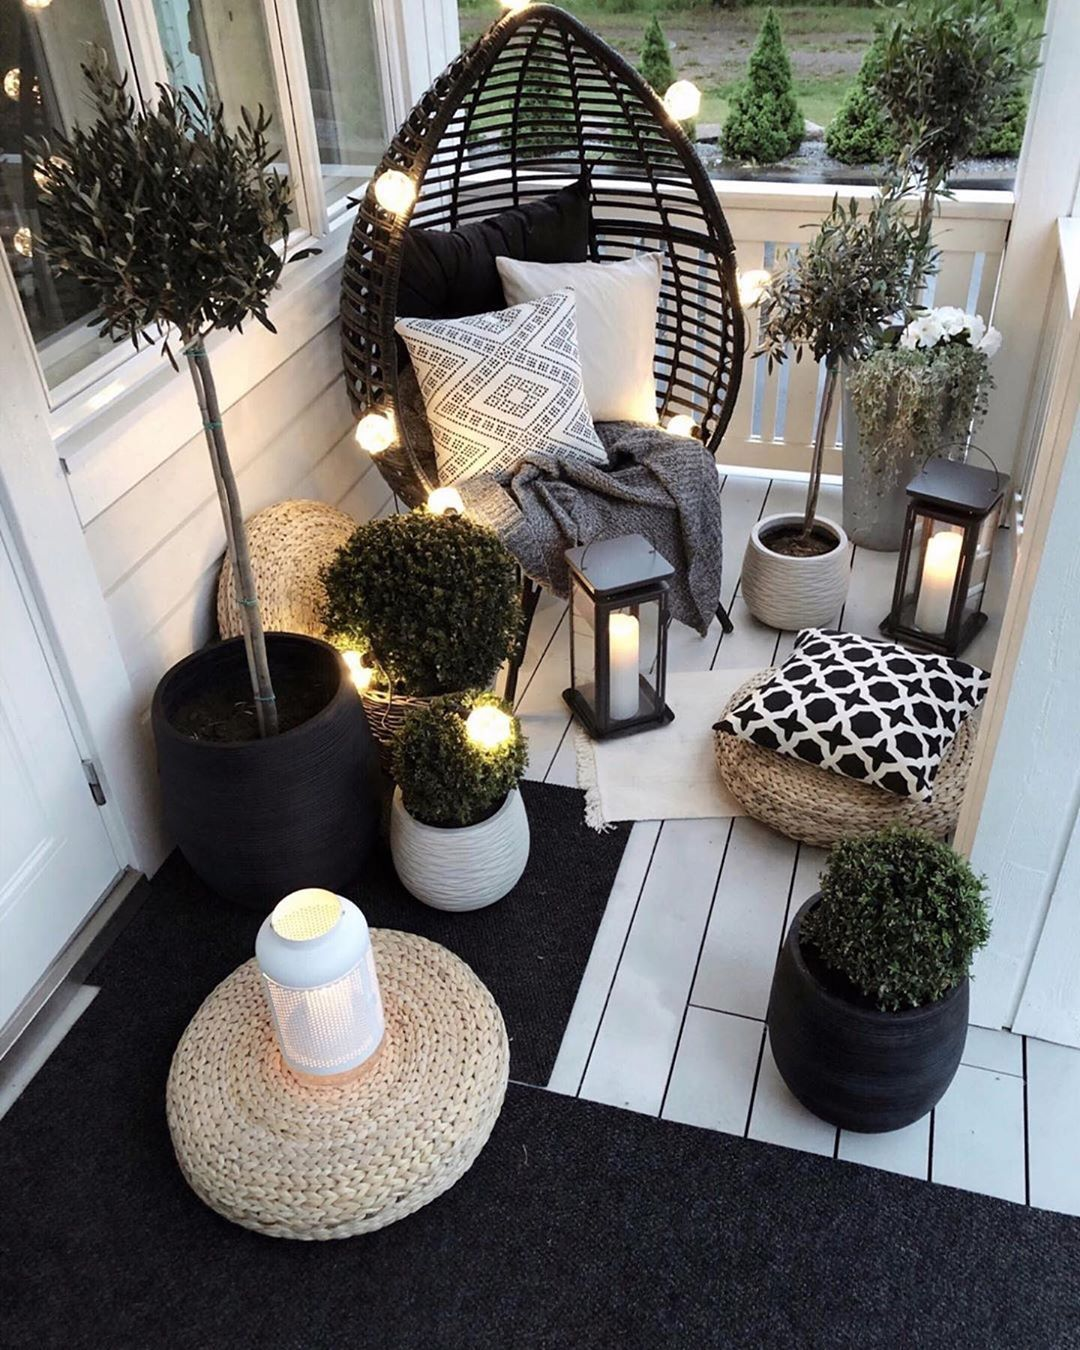 15 Ways to Make Your Small Balcony Space Feel Like A Backyard Oasis -  Das schönste Bild für  patio decorating ideas , das zu Ihrem Vergnügen passt...